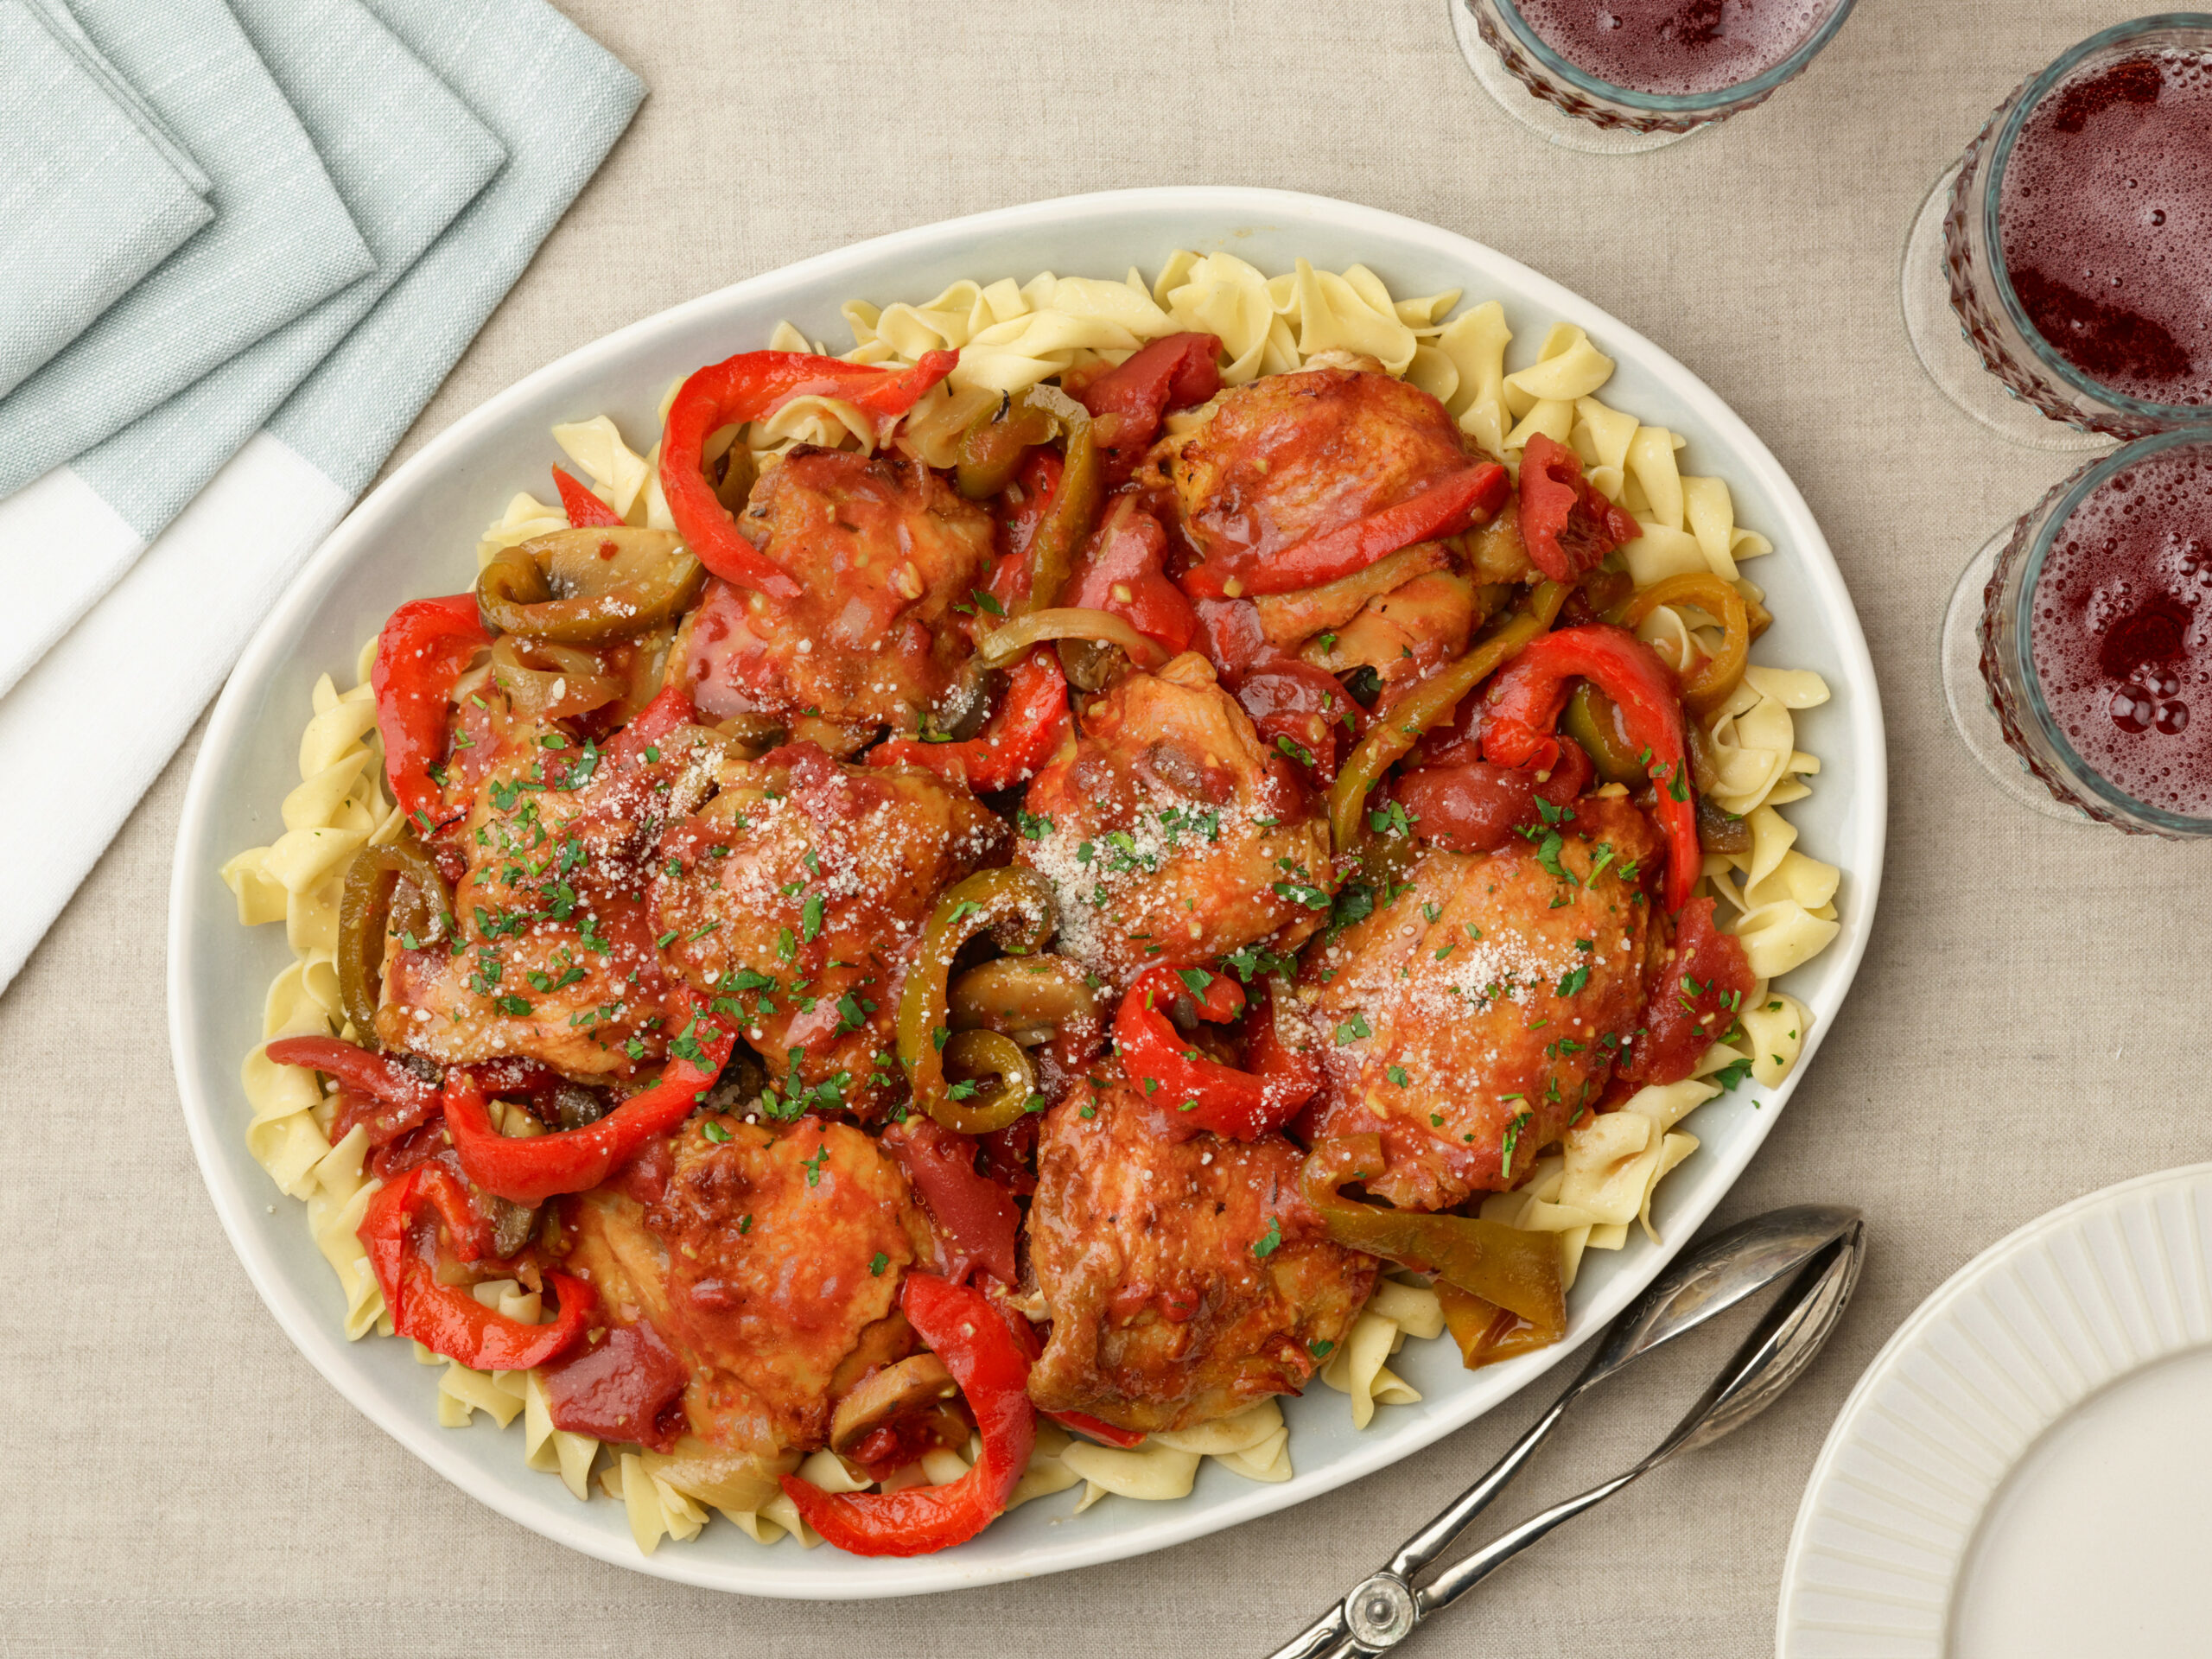 This Week's Menu: Use It Up – The Occasional Nomads - Chicken Recipes Ree Drummond